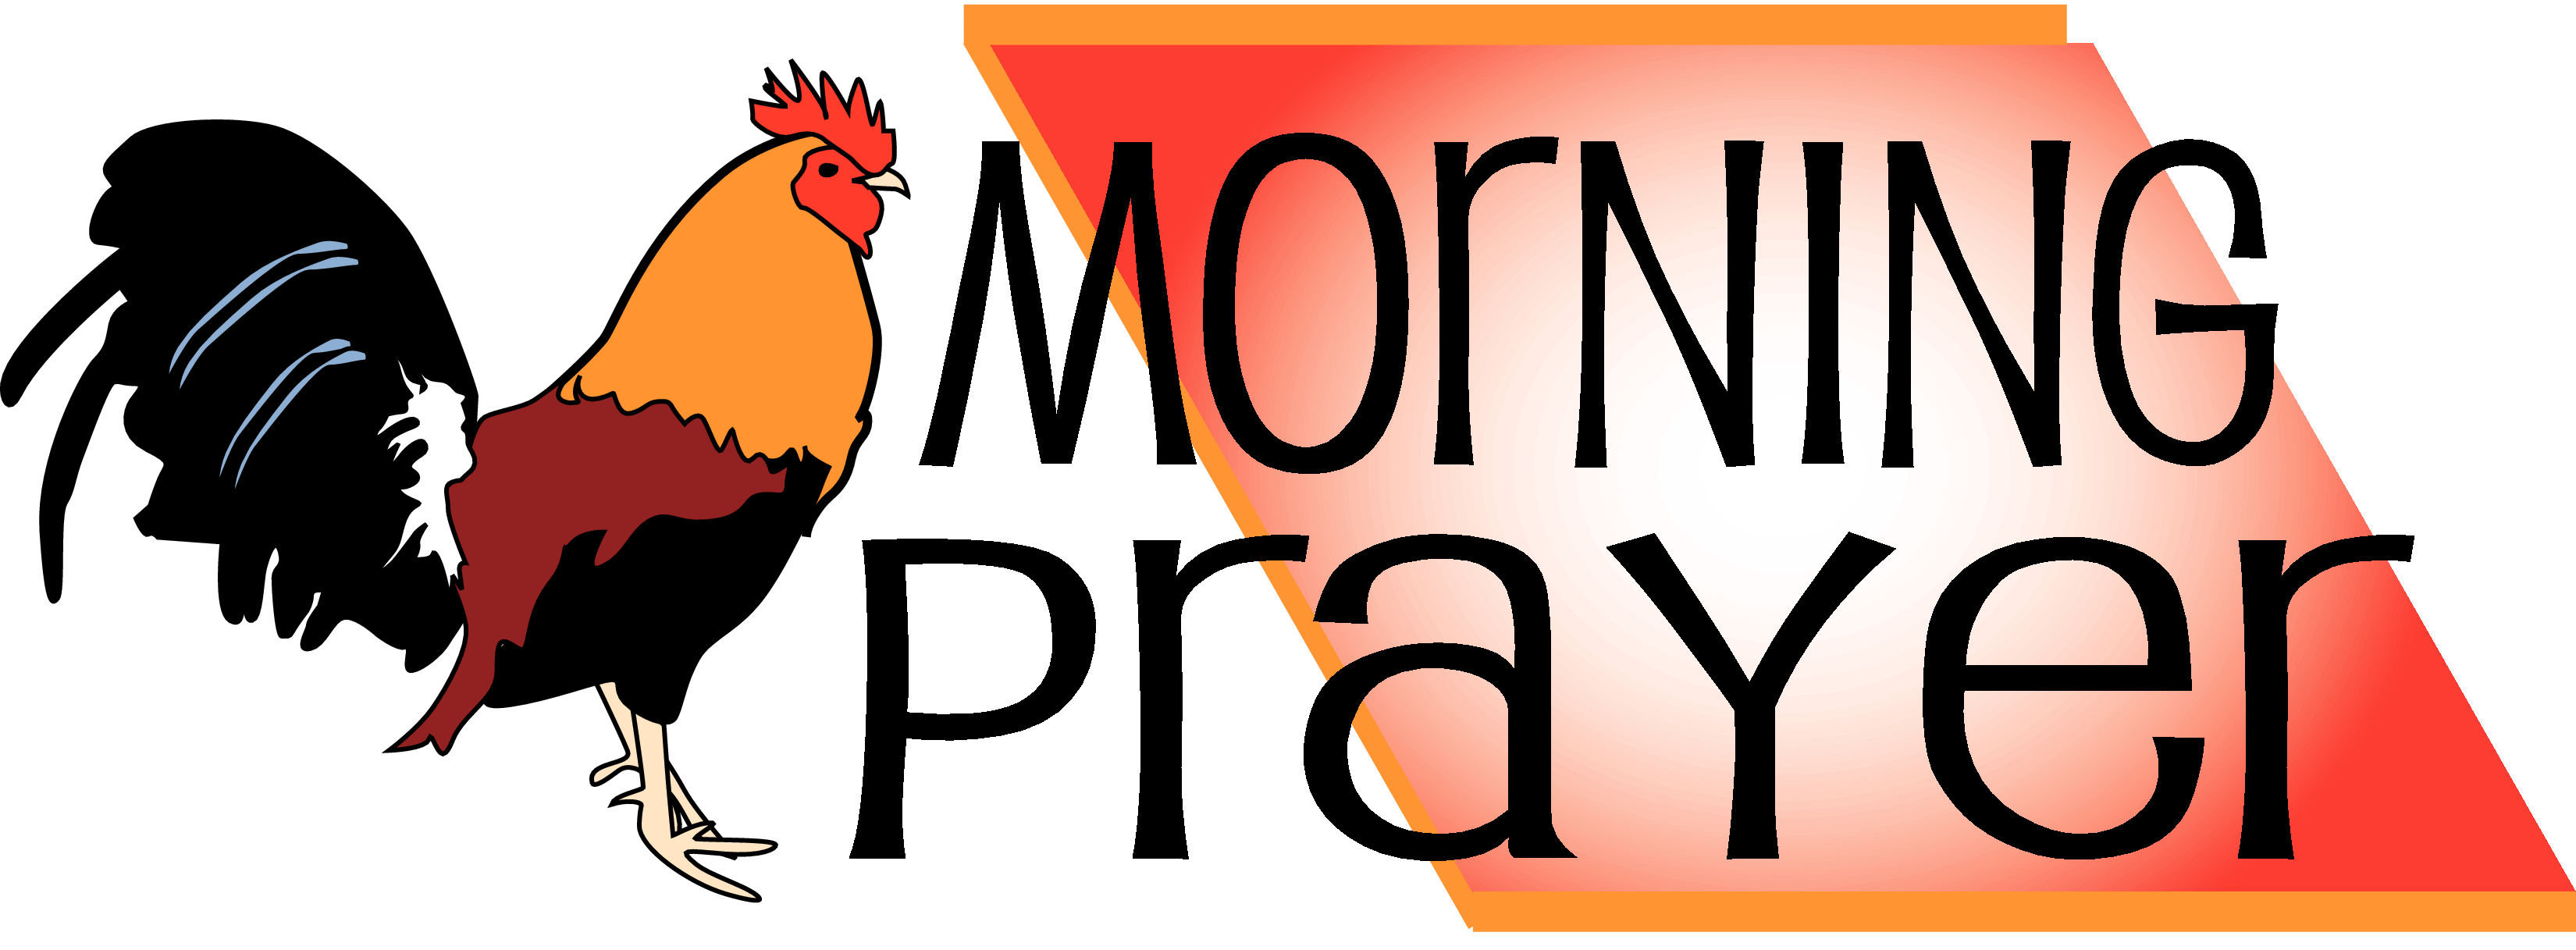 Prayer Ministry Clipart